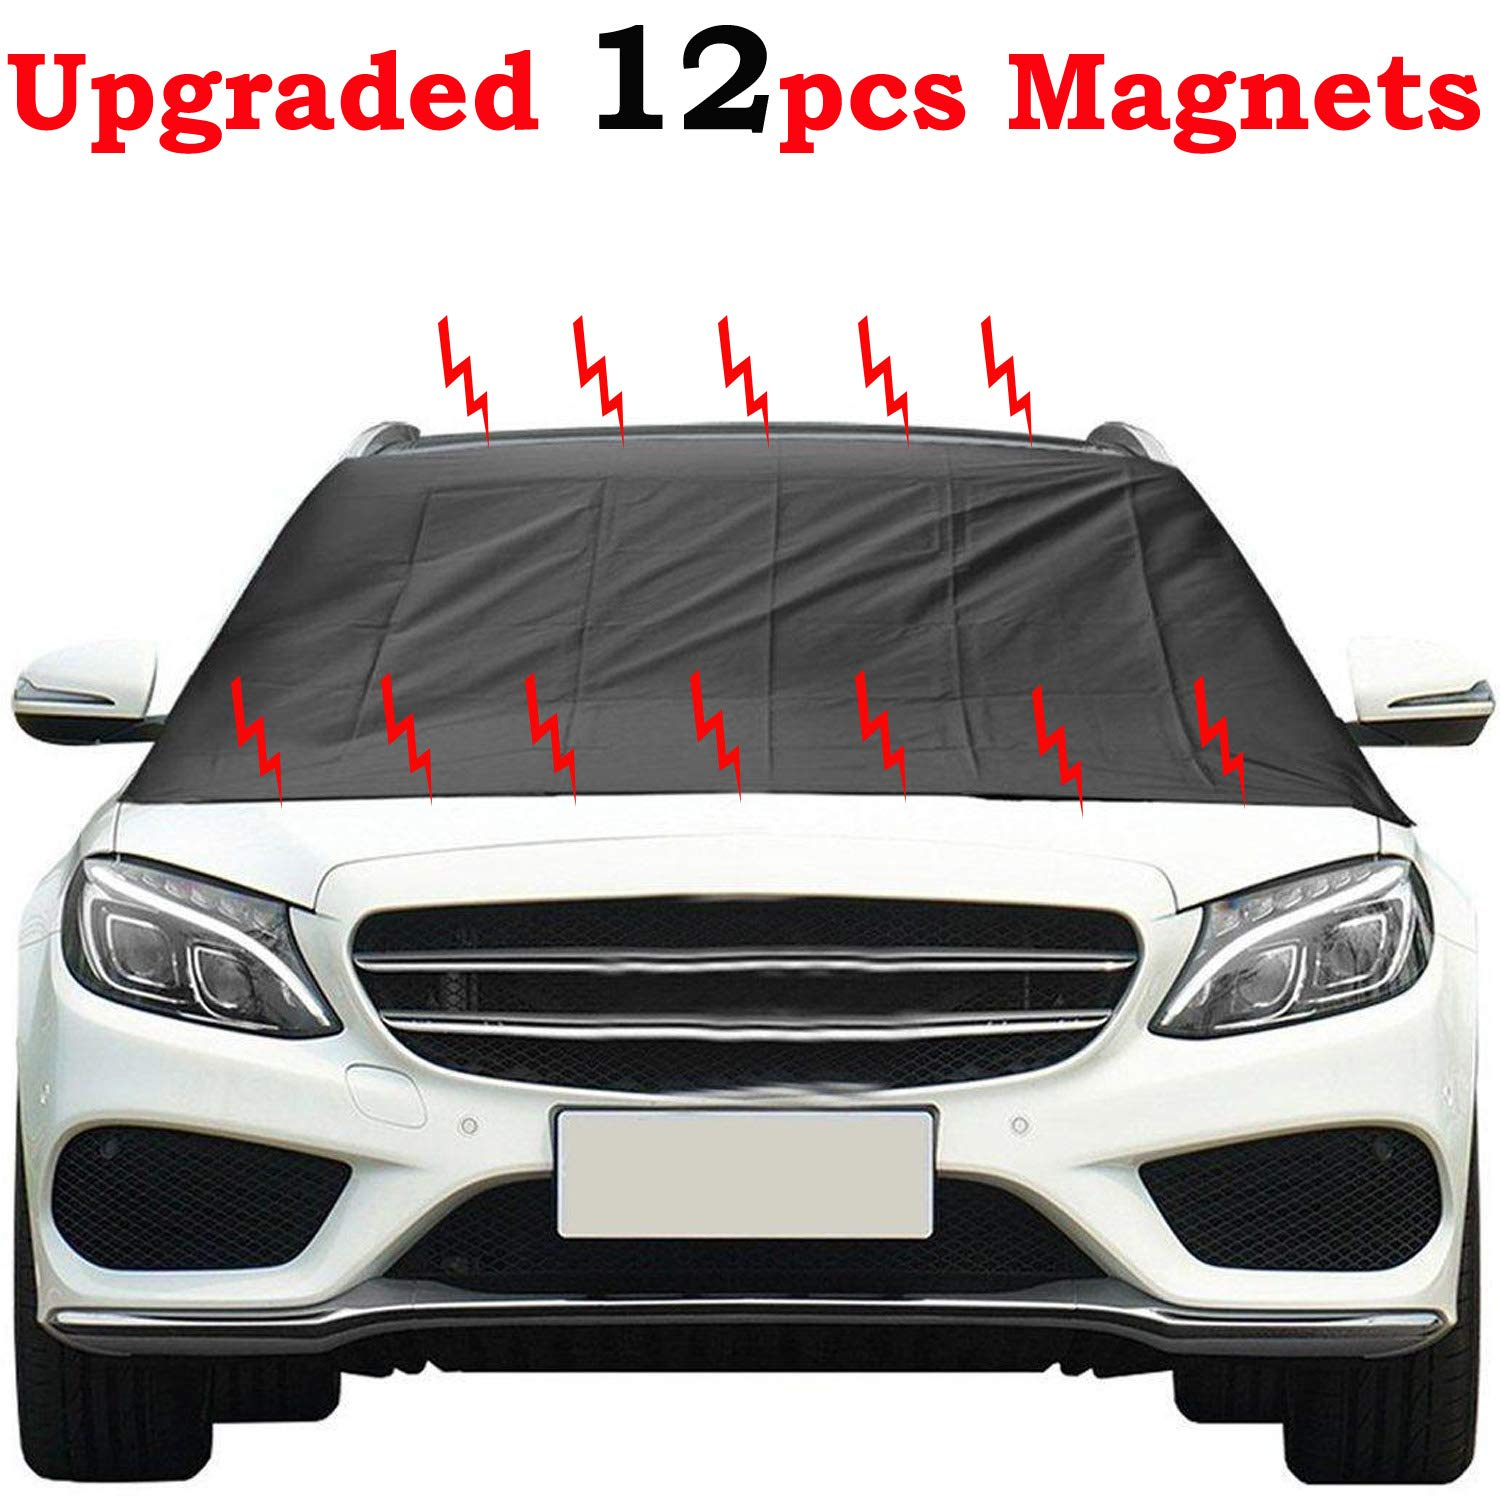 Magnetic Windshield Snow Cover with 12 PCS Powerful Magnets - 2018 Upgraded Windshield Snow Ice Cover - Extra Large for Most Car SUV Truck Kribin